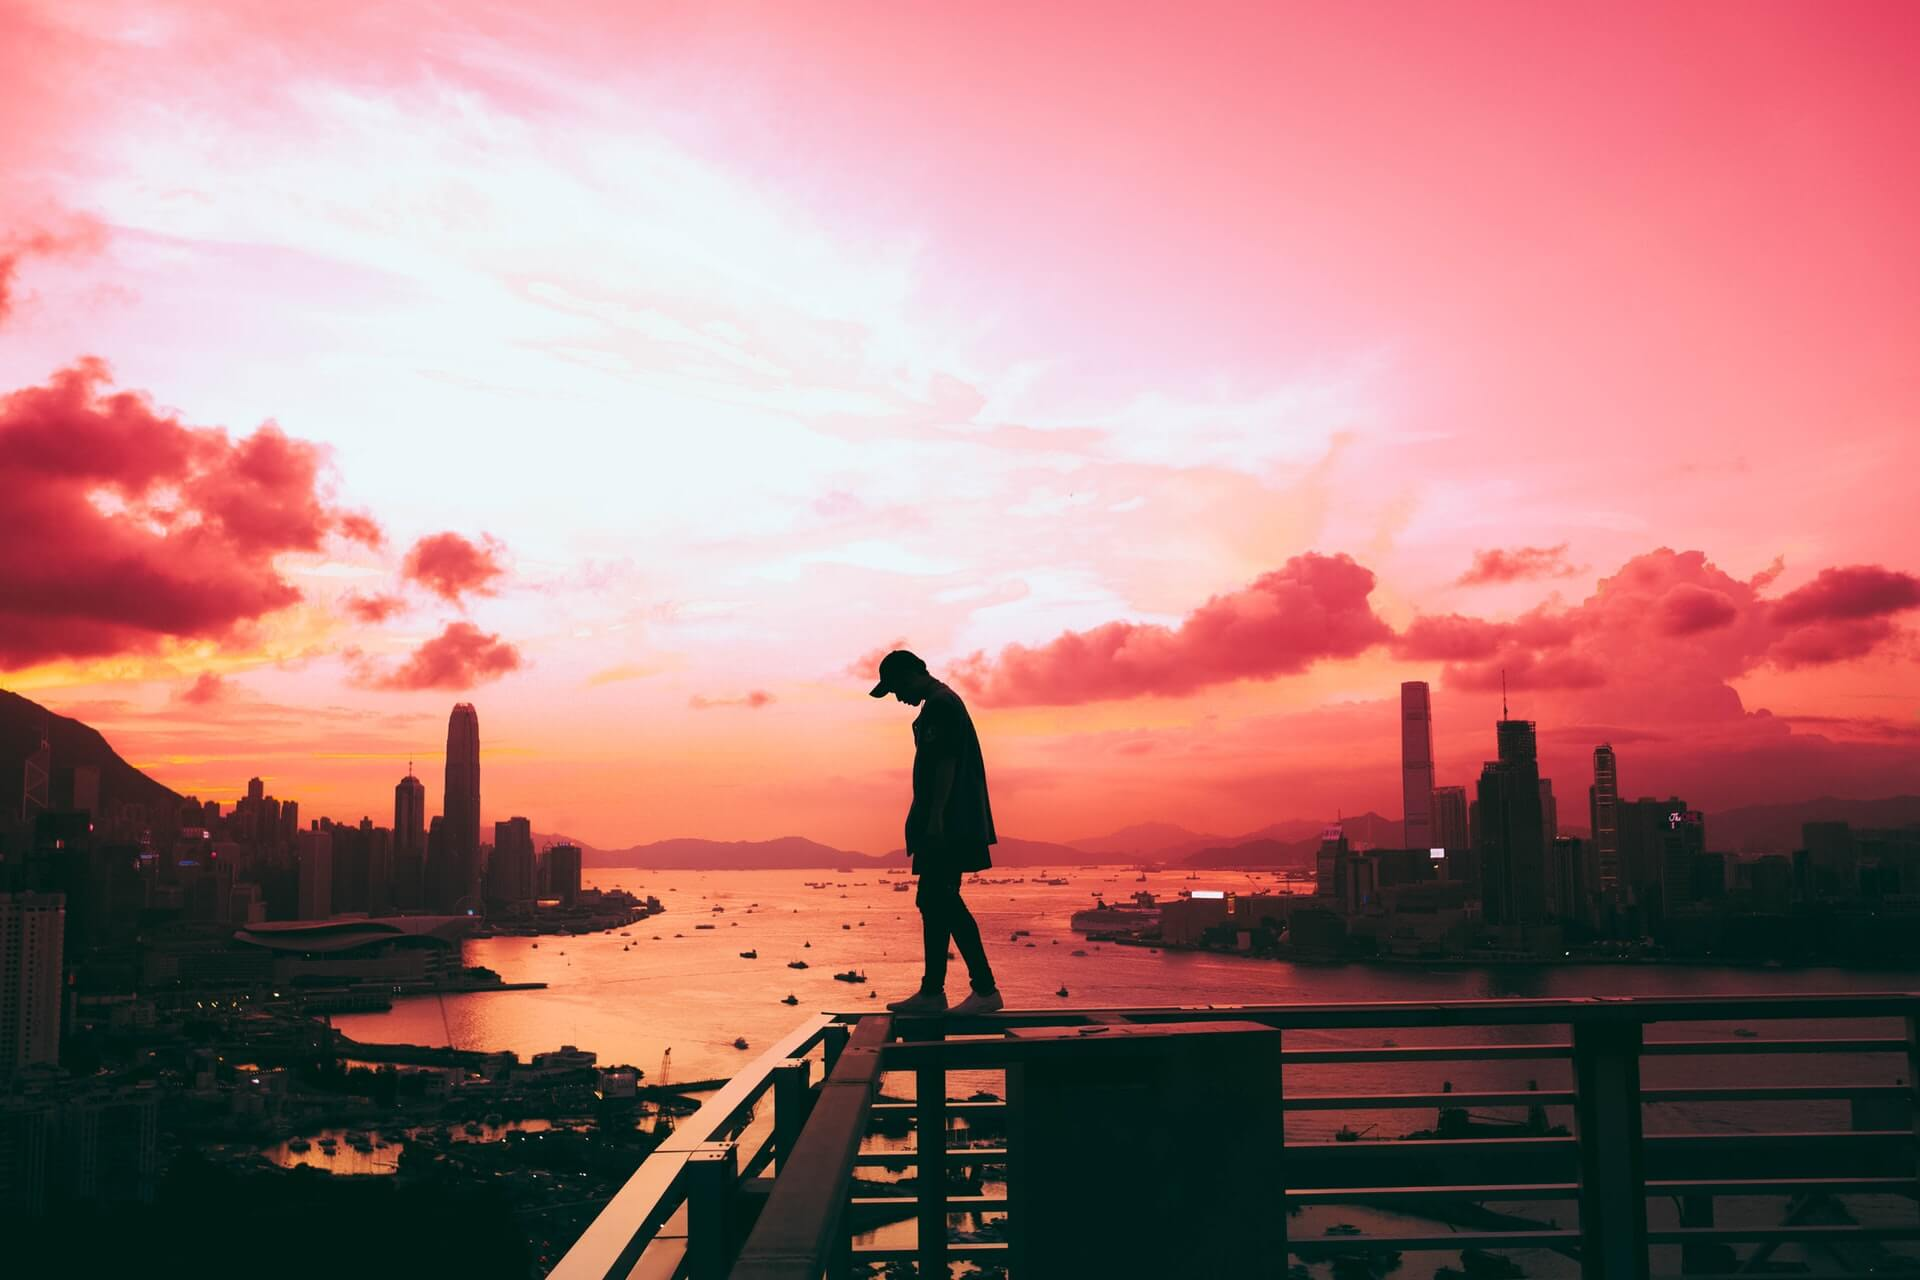 A man silhouetted against a crimson sunset in Hong Kong